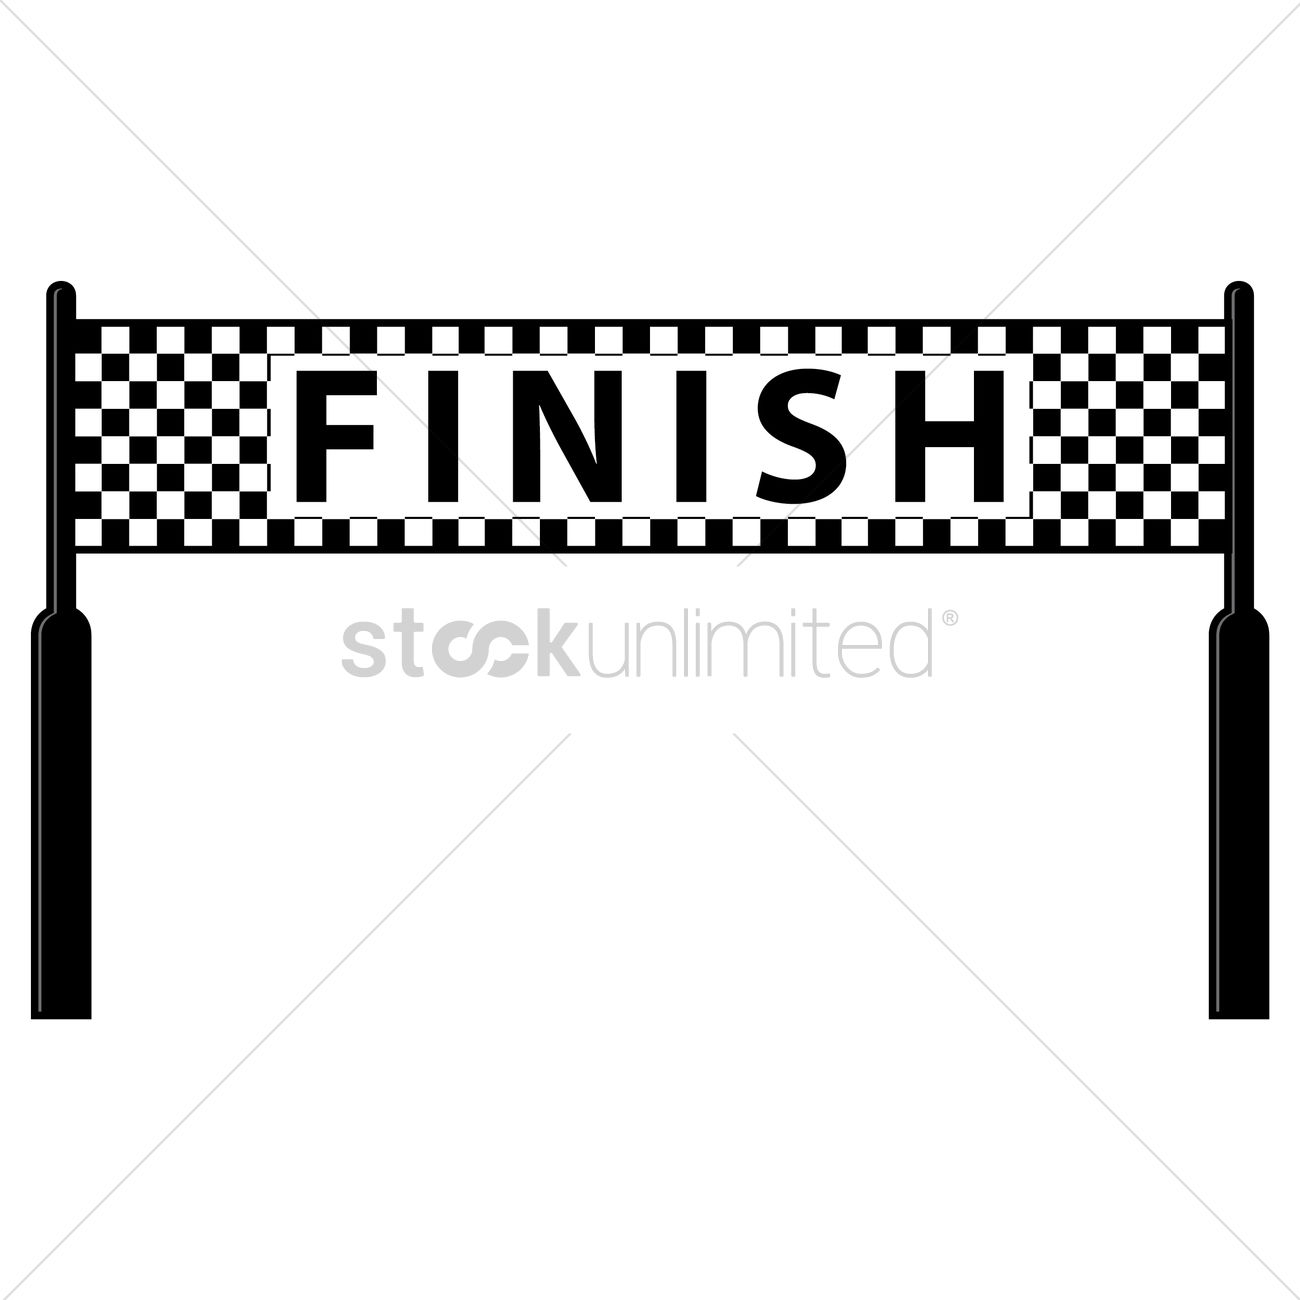 Finish Line 1479002 on race car flag printable